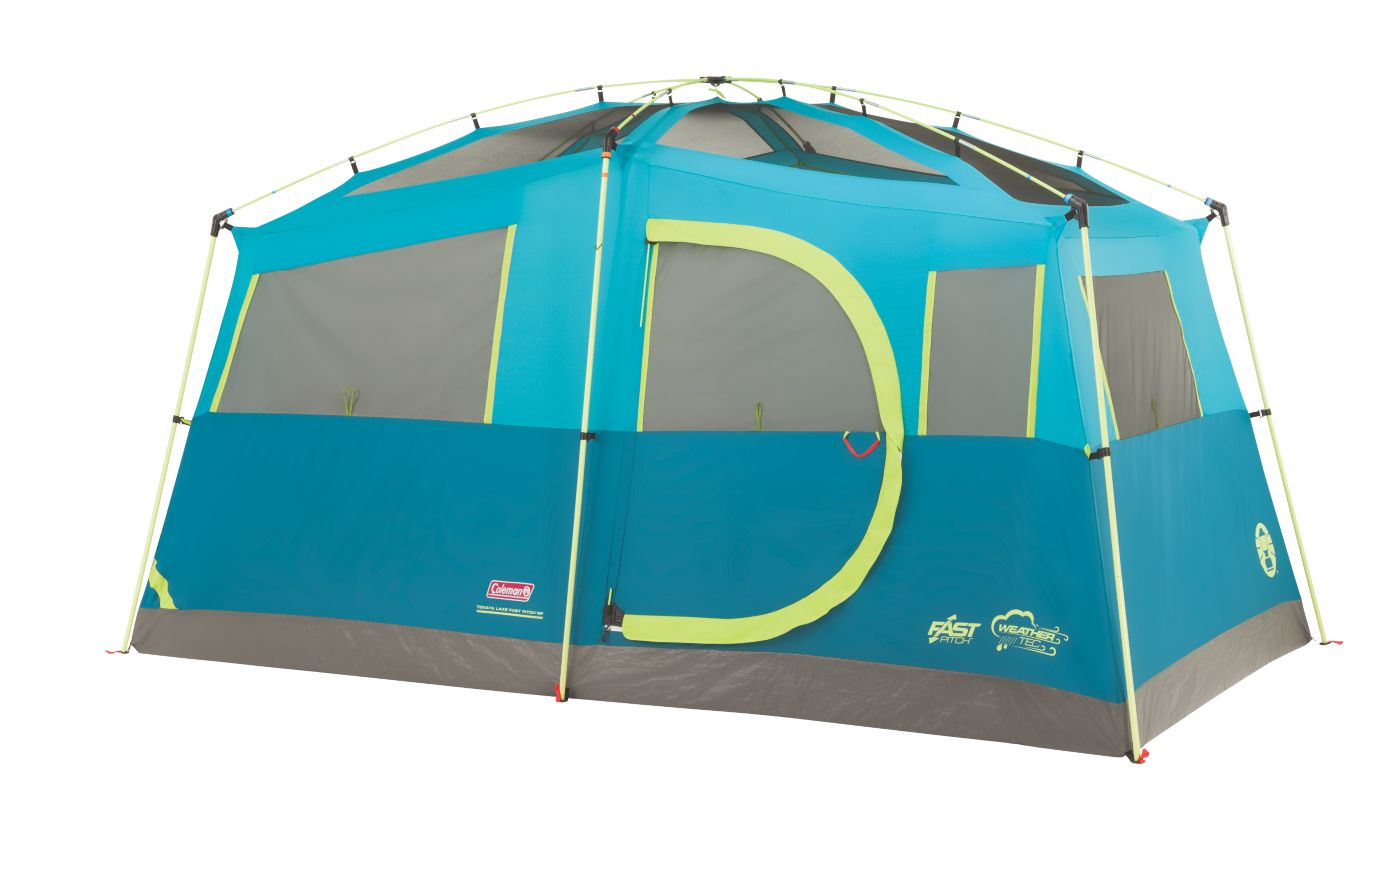 ... Tenaya Lake™ Fast Pitch™ 6-Person Cabin with Cabinets ...  sc 1 st  Coleman : coleman 3 season tent - memphite.com